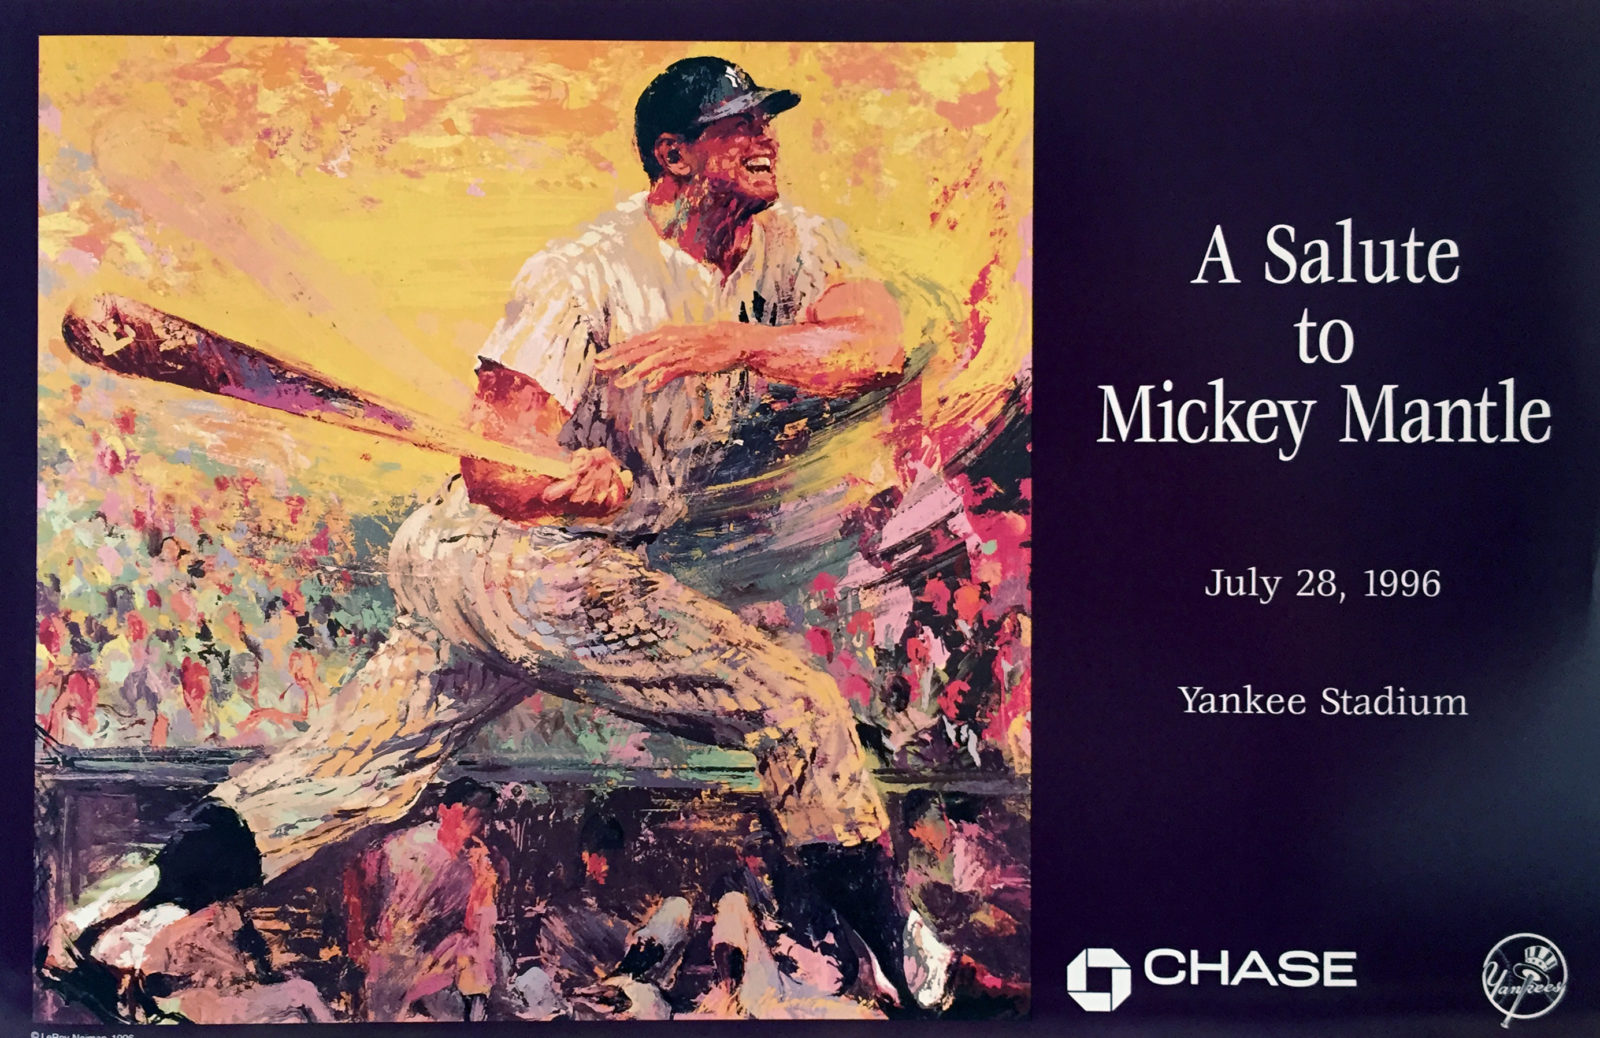 Salute to Mickey Mantle Baseball poster